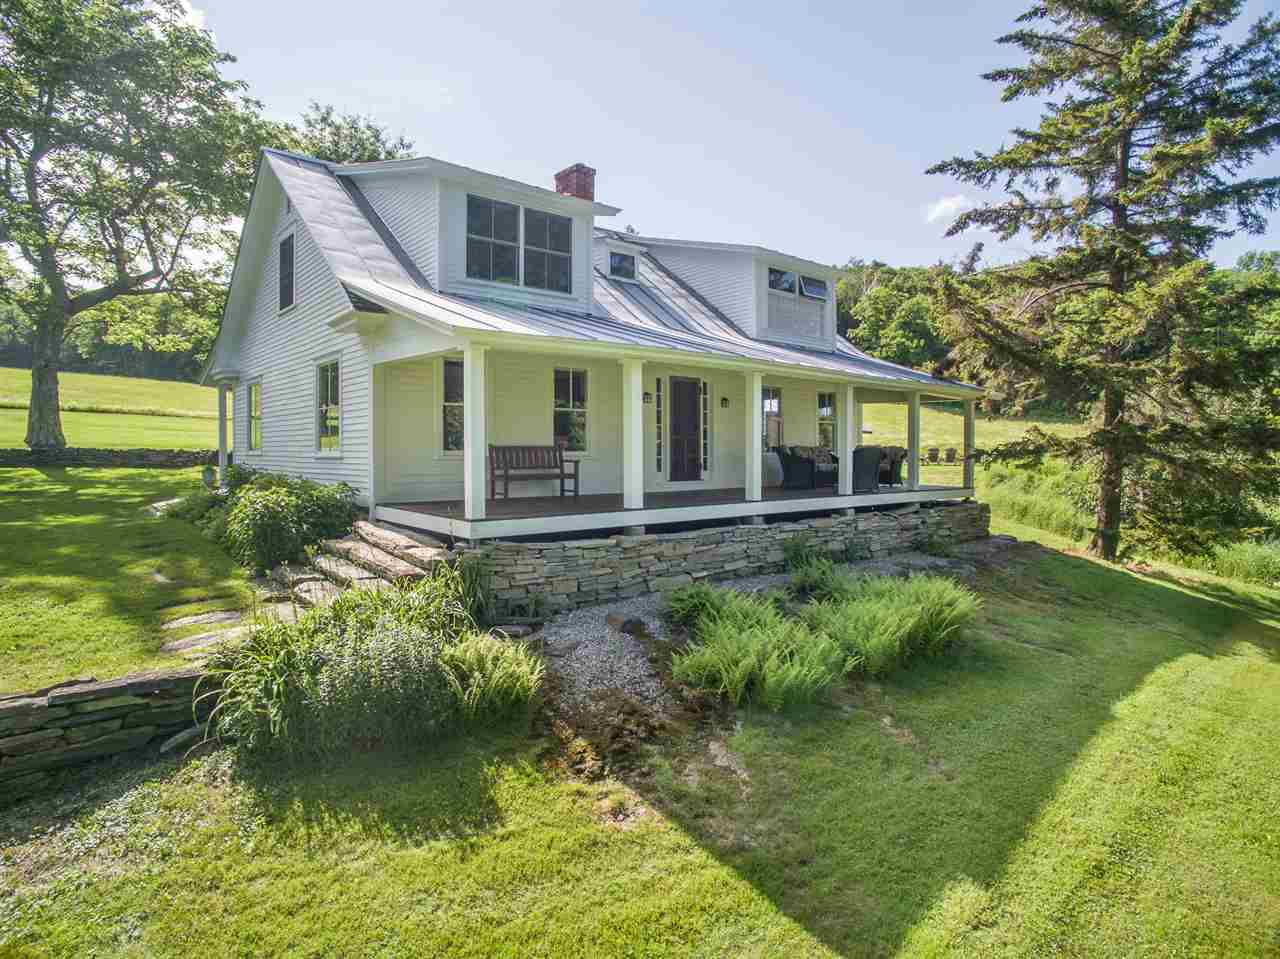 Property For Sale In Windsor County Vt